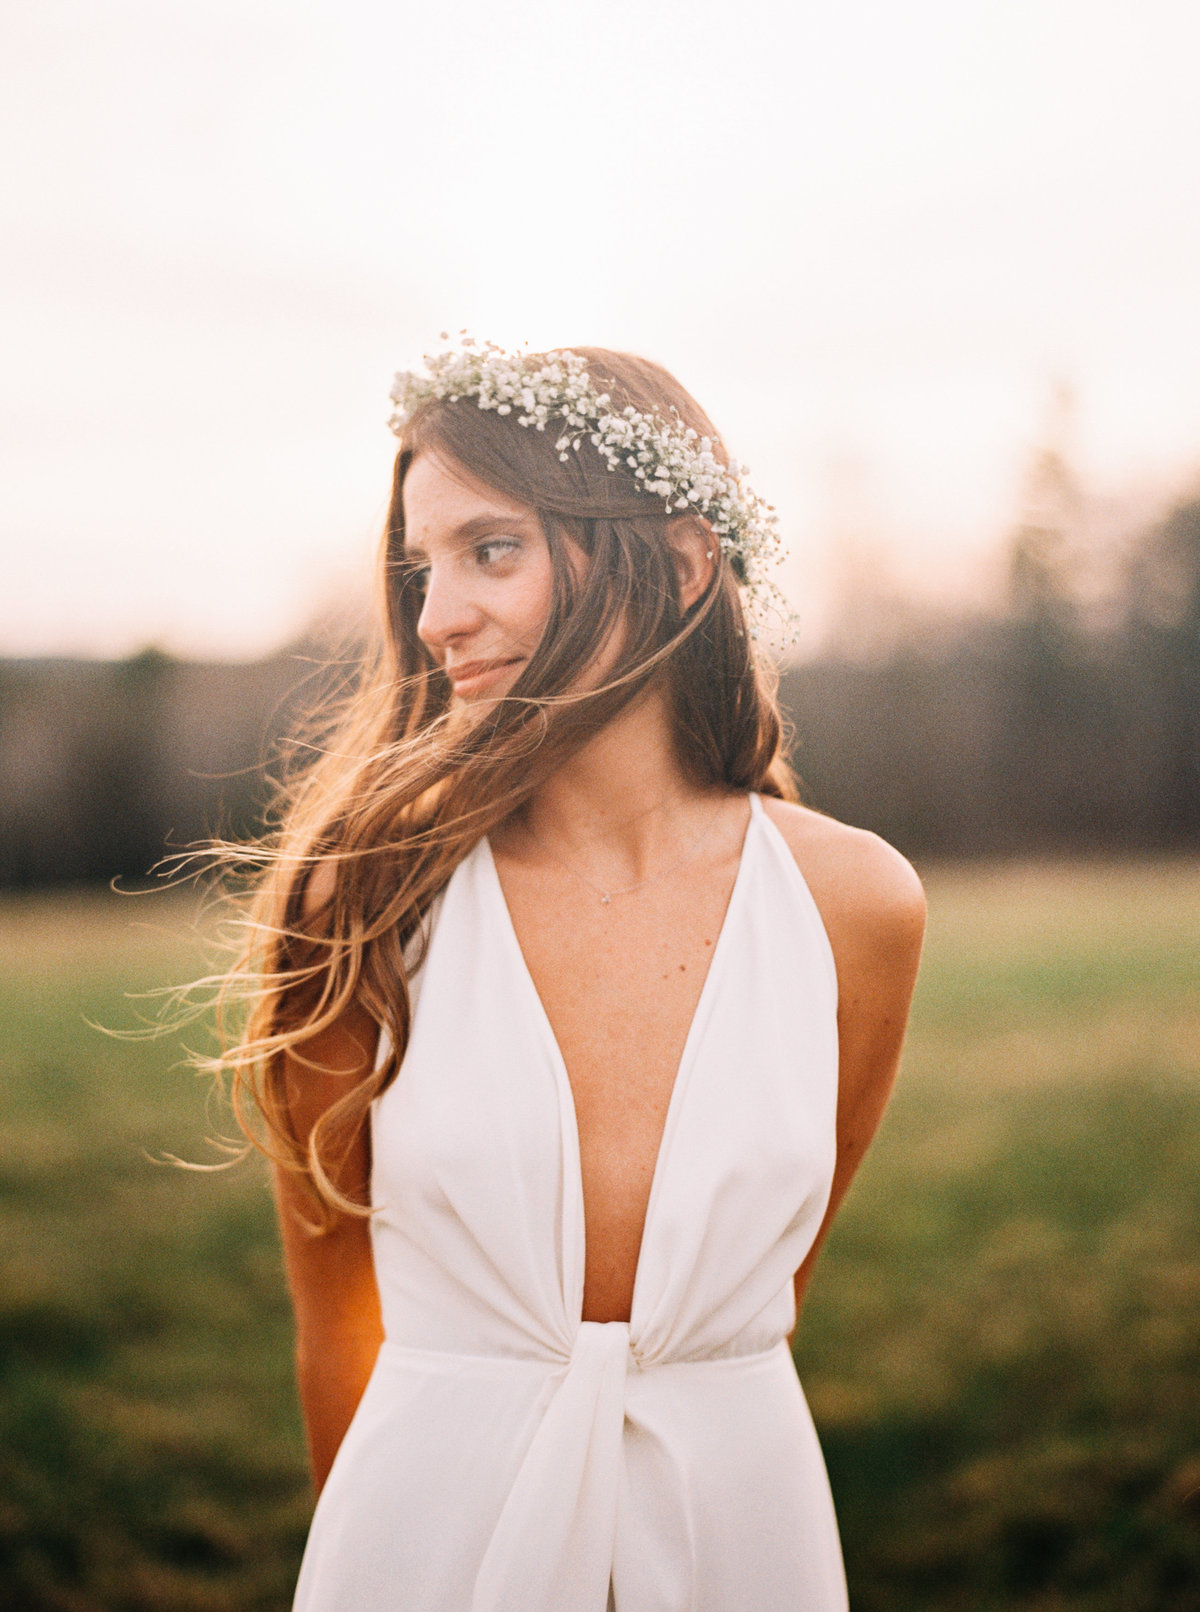 harrington farm modern bride at sunset wind in hair